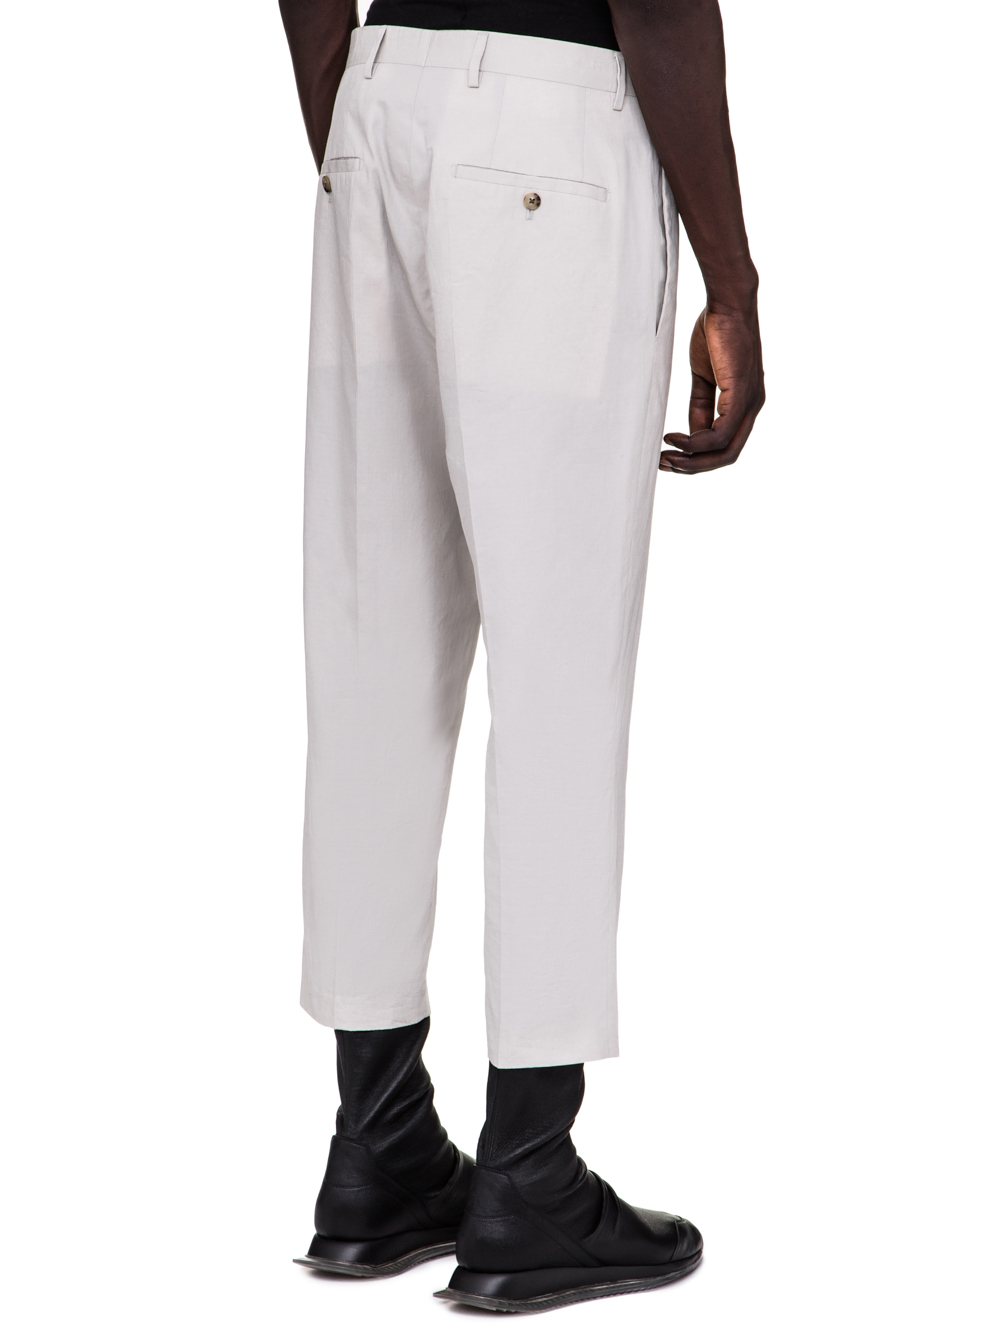 RICK OWENS SS19 BABEL SLIM CROPPED ASTAIRES TROUSERS IN OYSTER LIGHT GREY